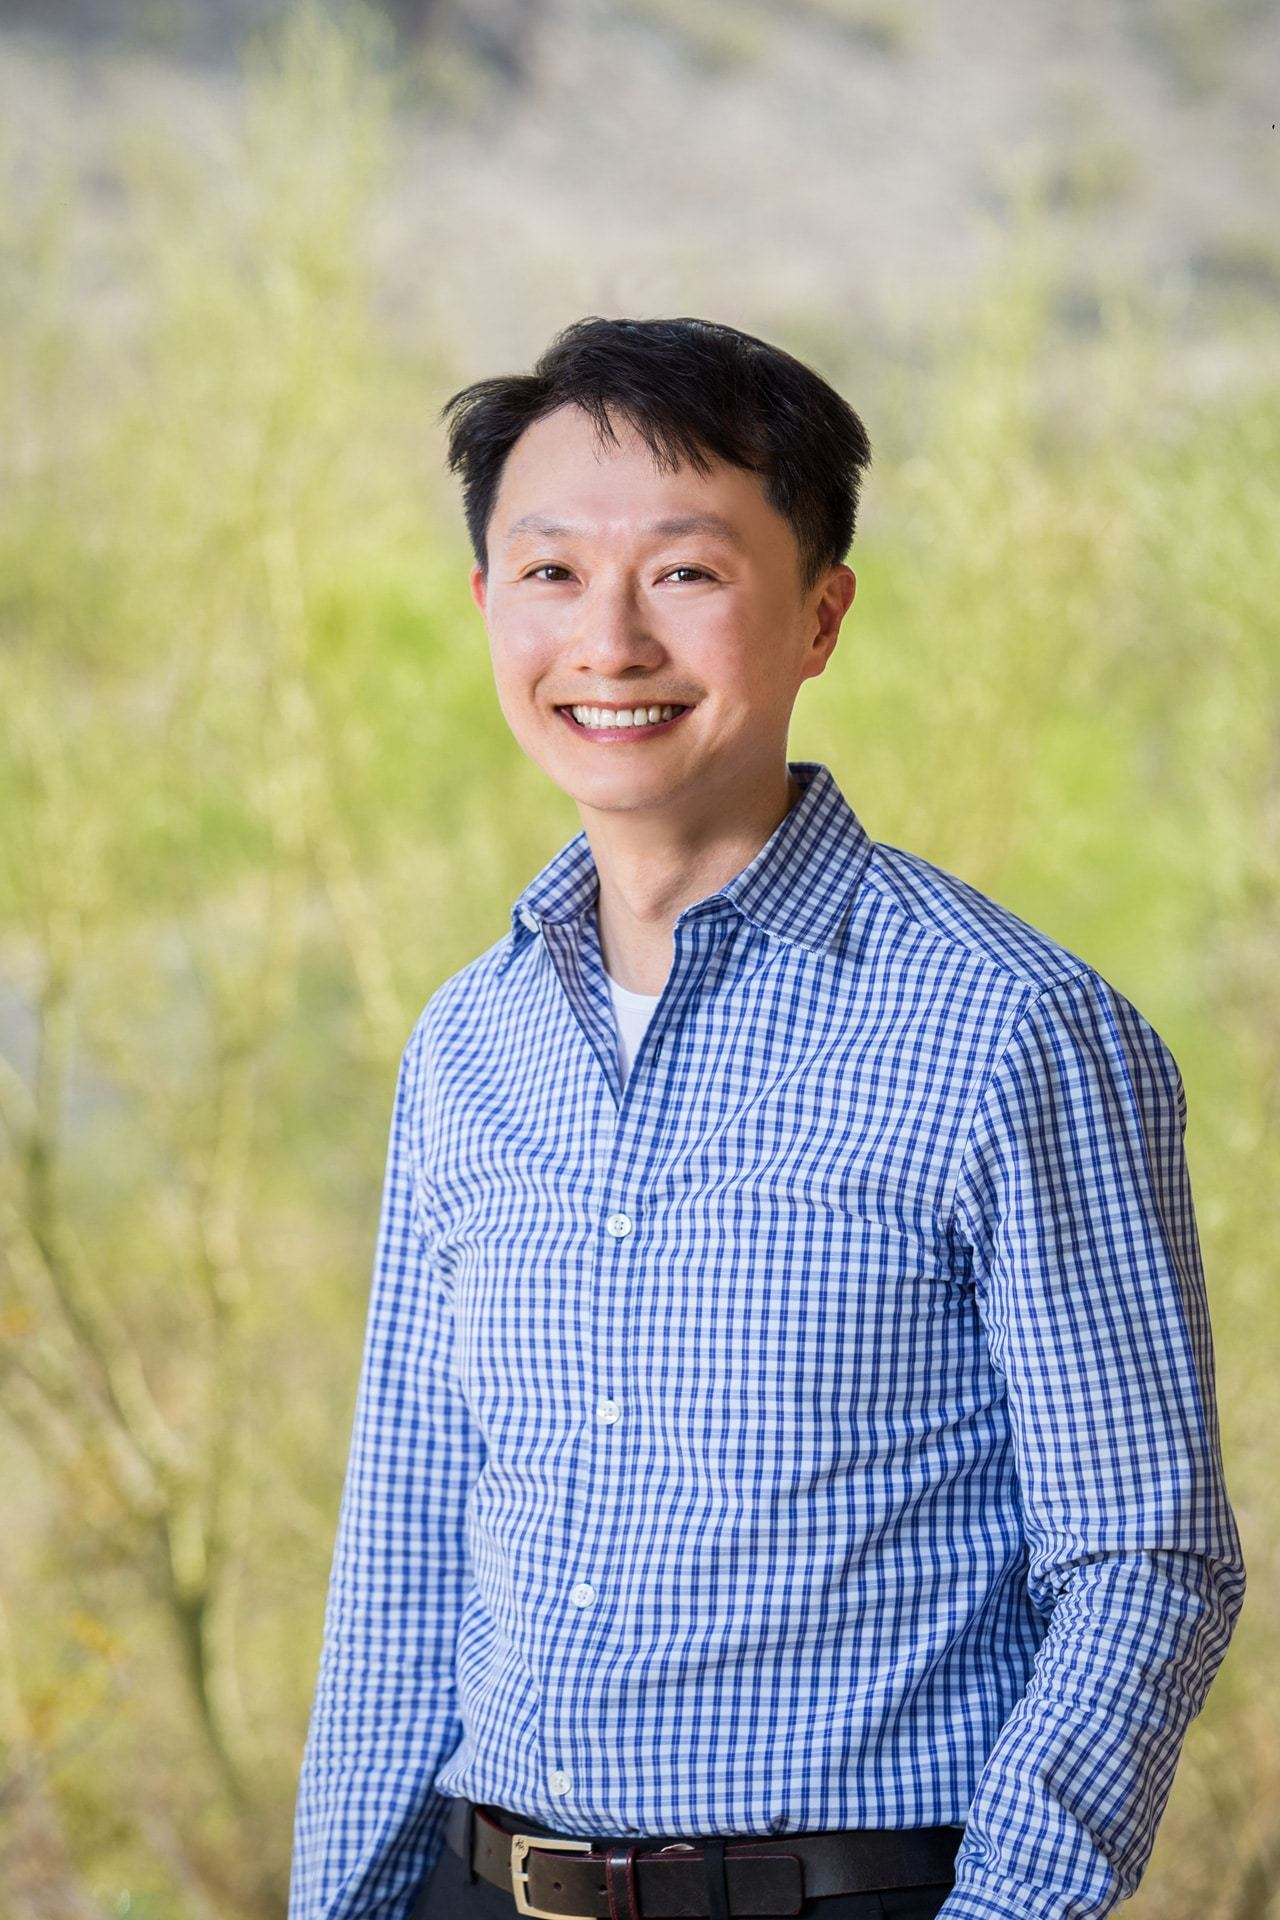 Dr. Park is the owner of OoLi Orthodontics in Phoenix